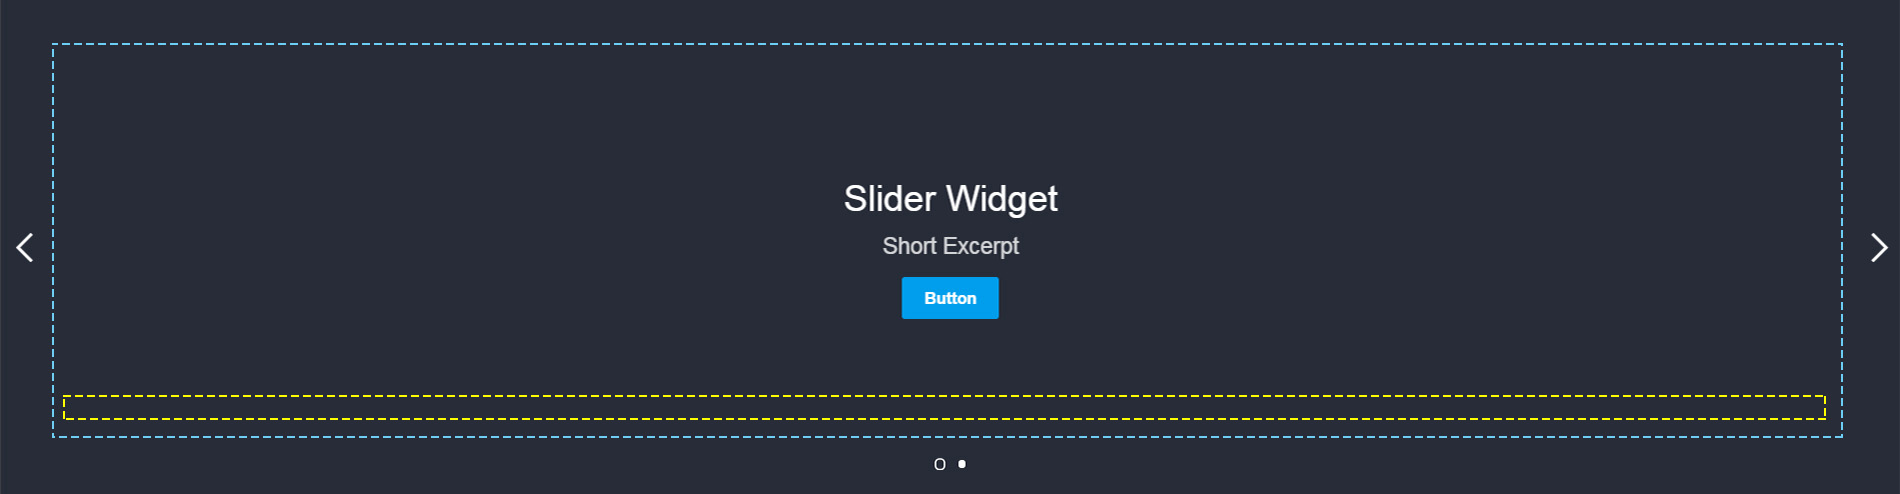 layers_after_slider_widget_item_inner